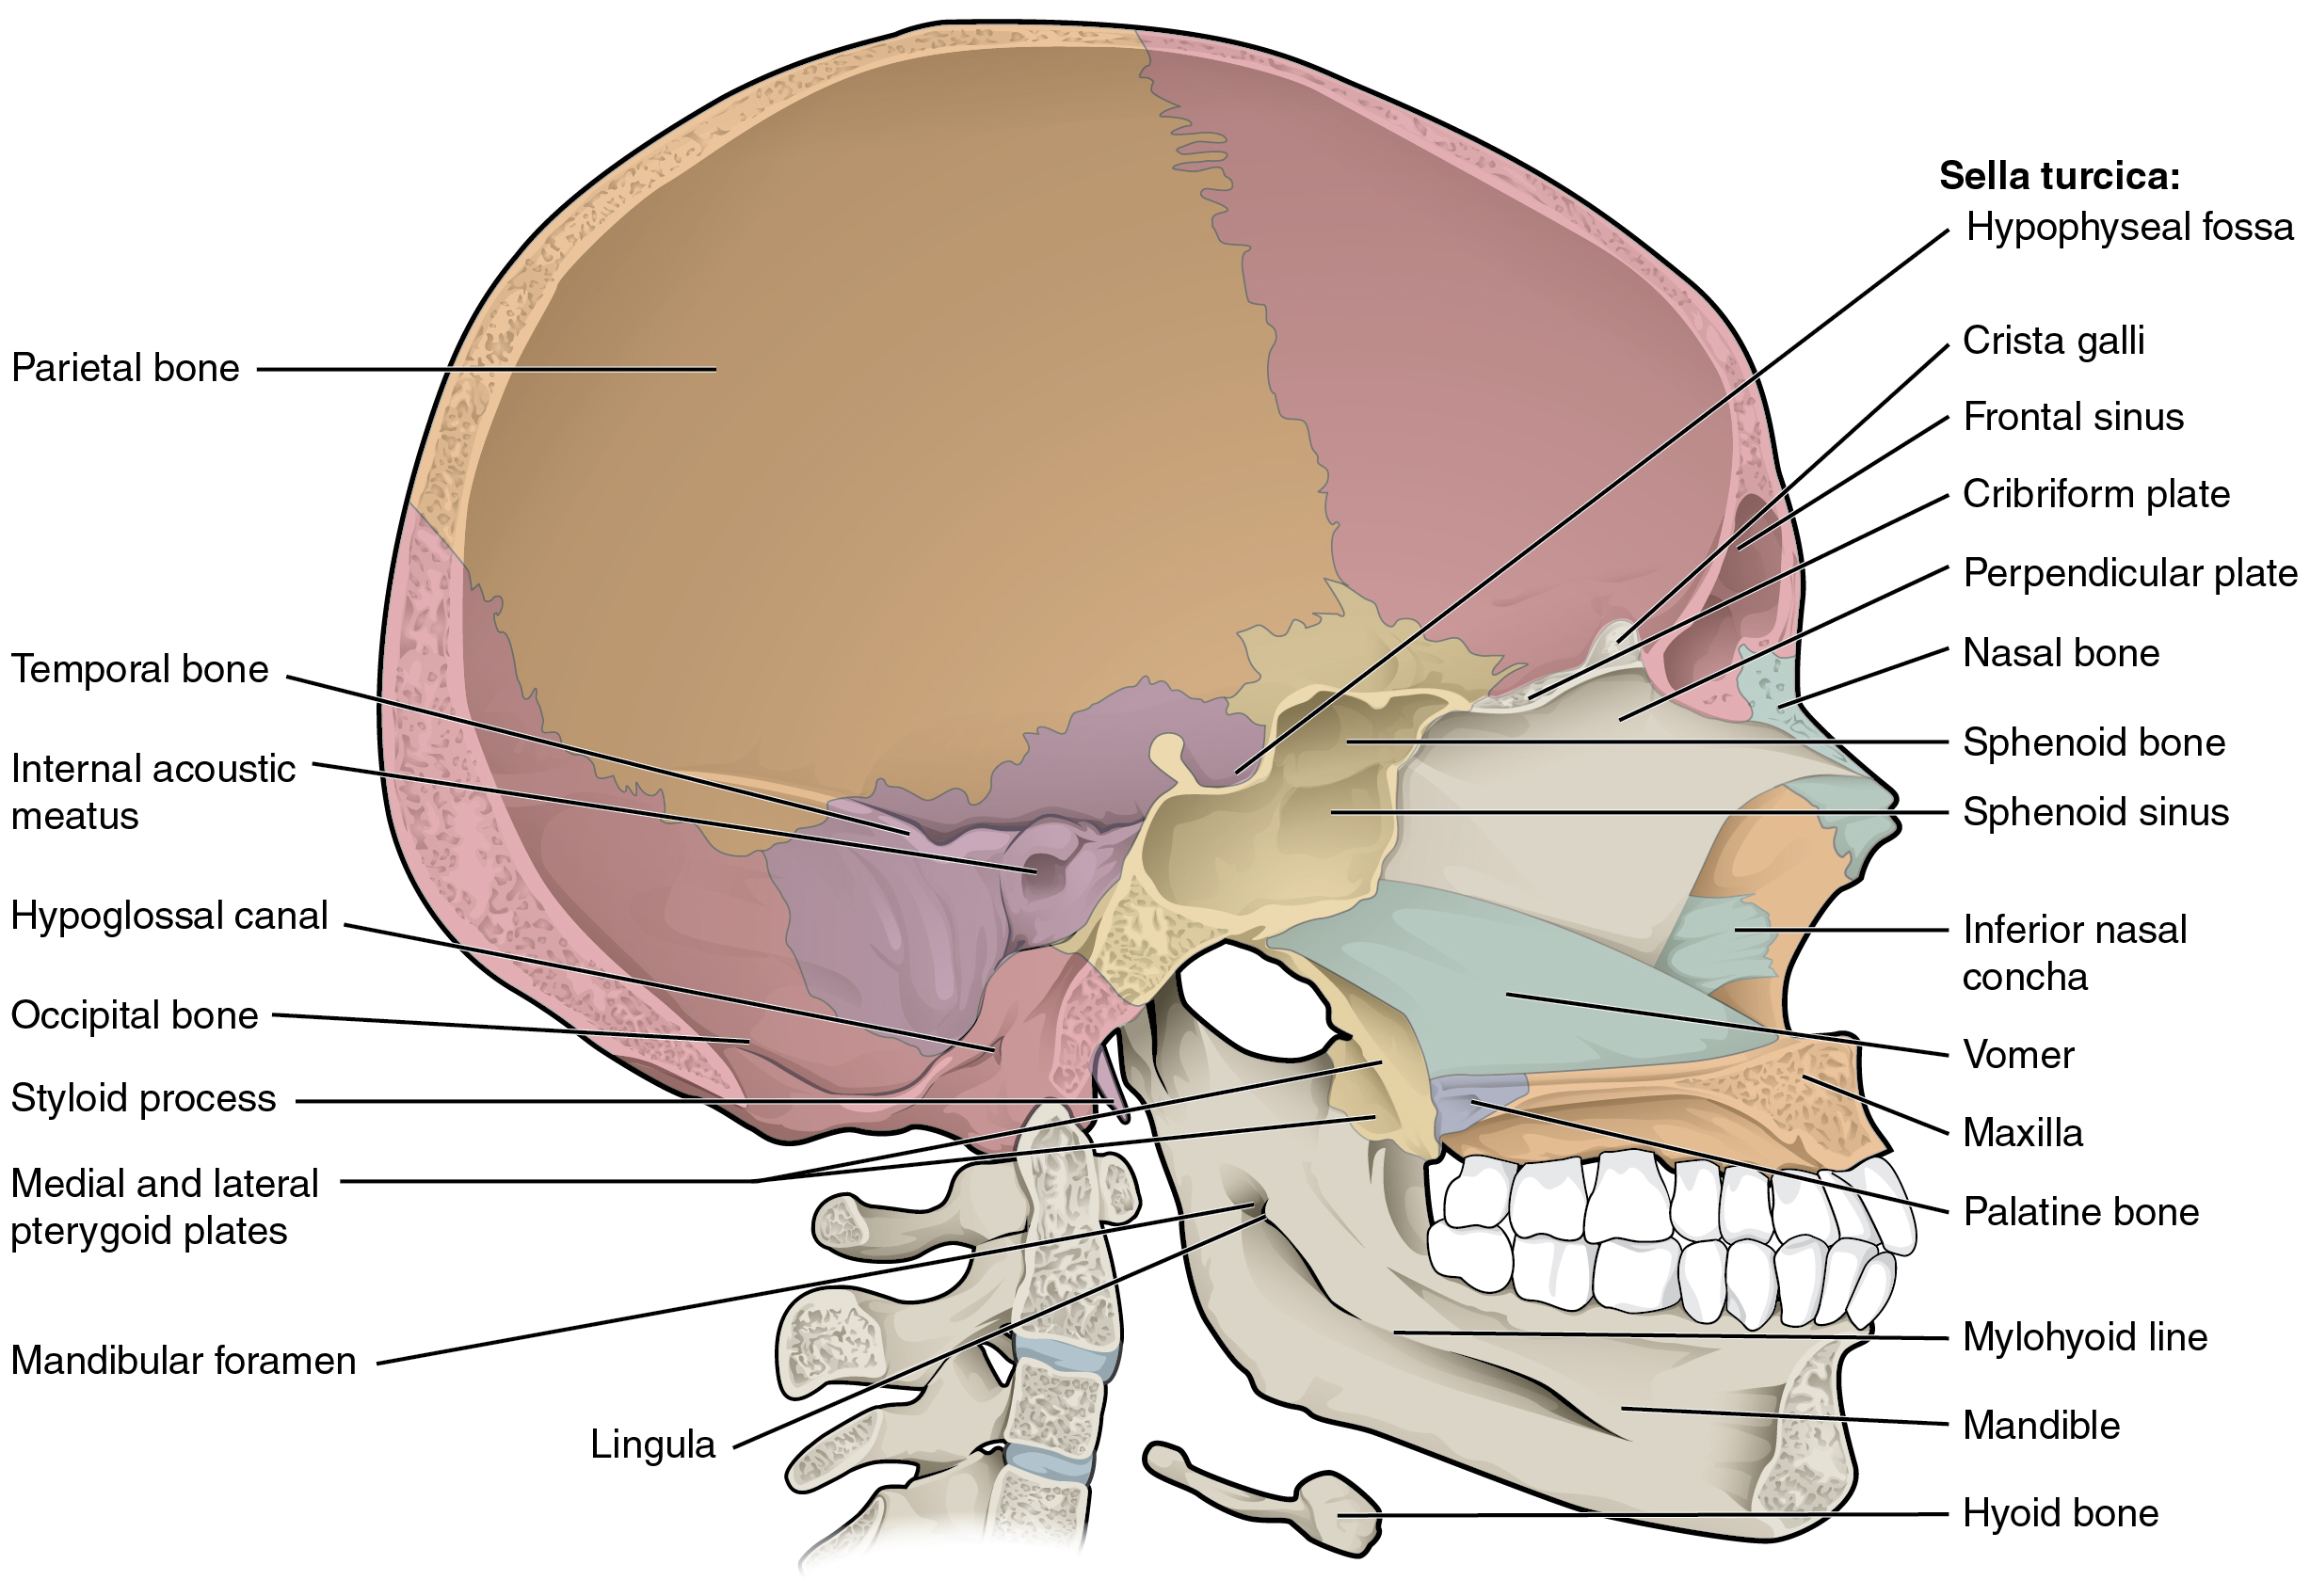 This diagram shows the sagittal section of the skull and identifies the major bones and cavities.